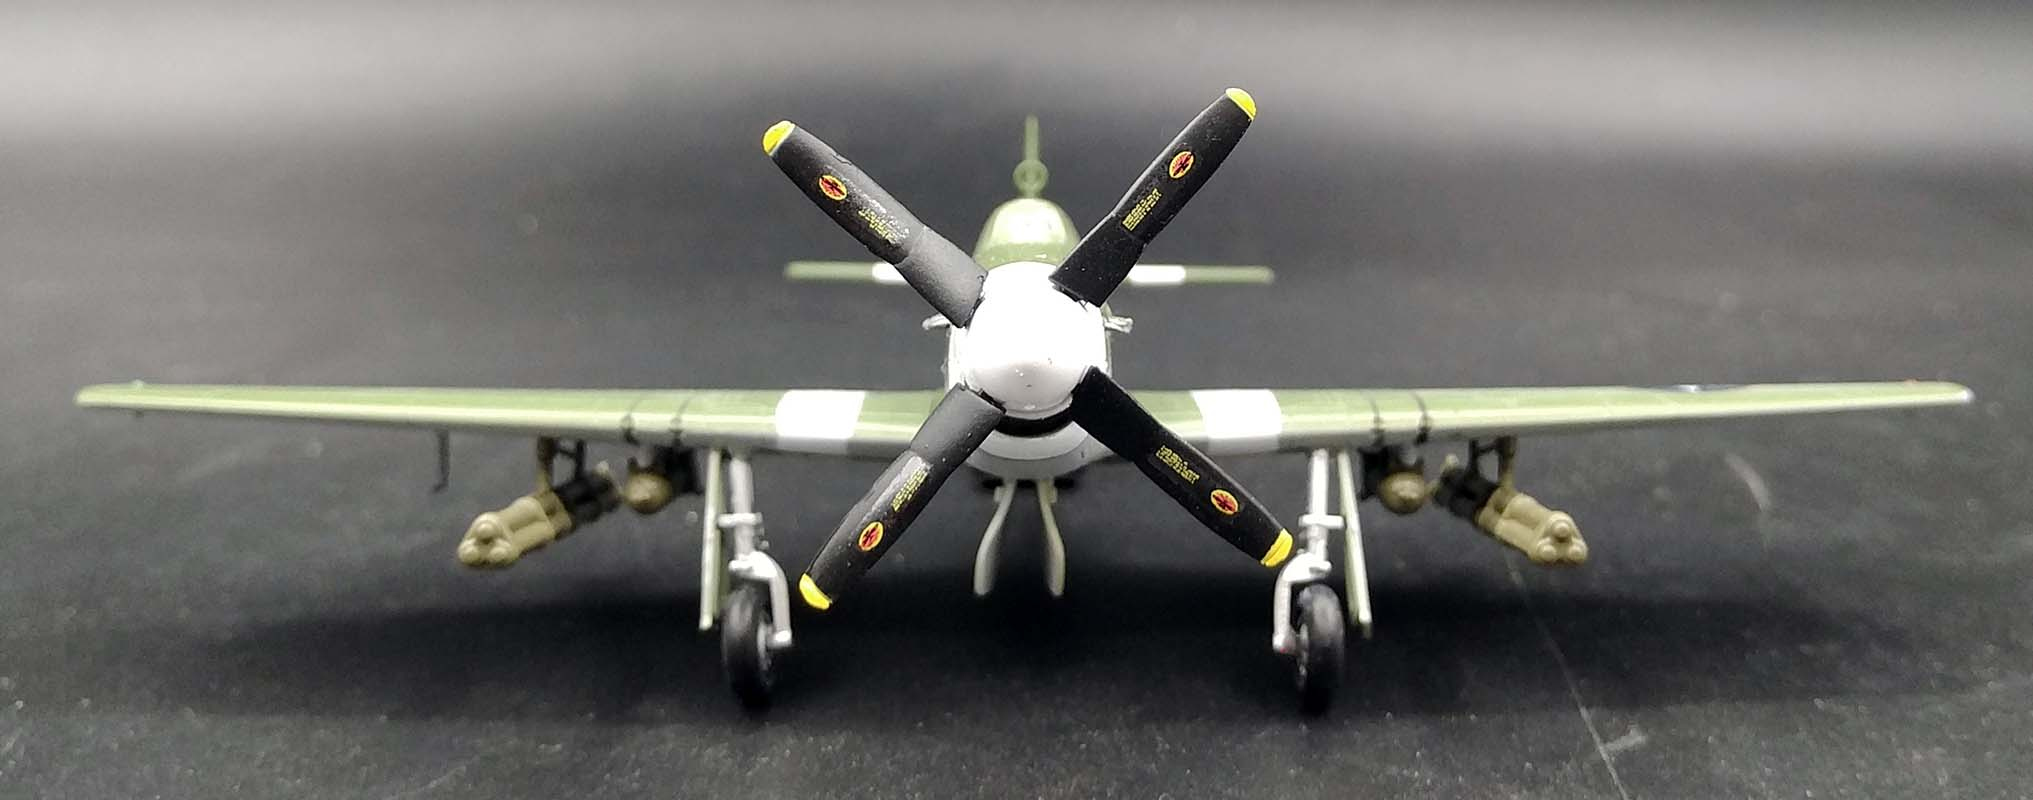 WWII P-51B mustang Lieutenant Henry Brown 1//72 no diecast plane Easy model